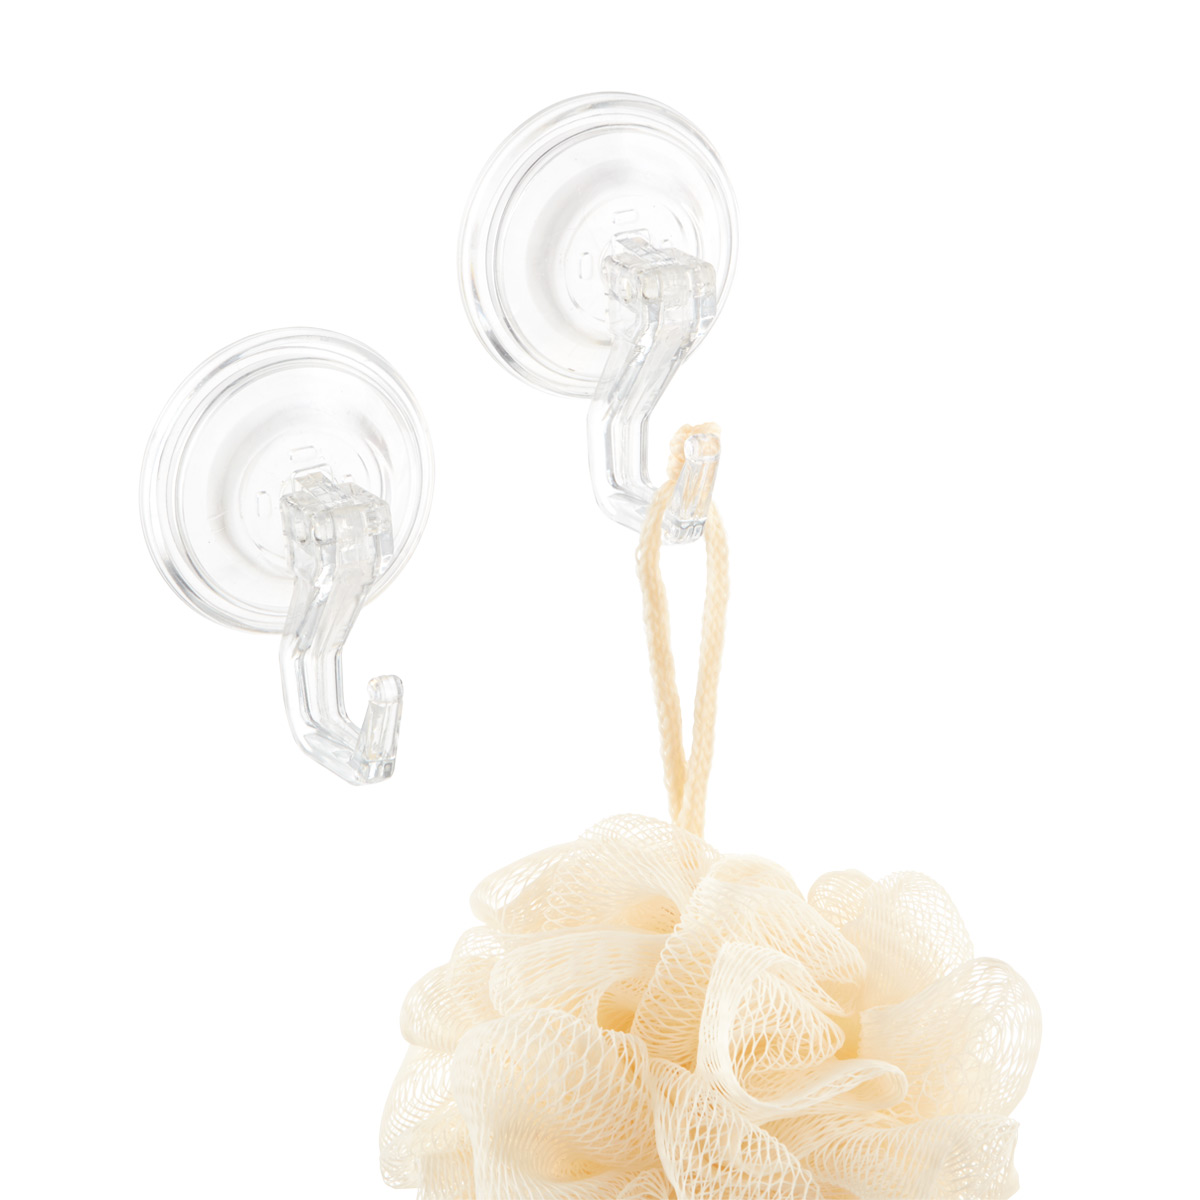 Charmant Suction Cup Hooks